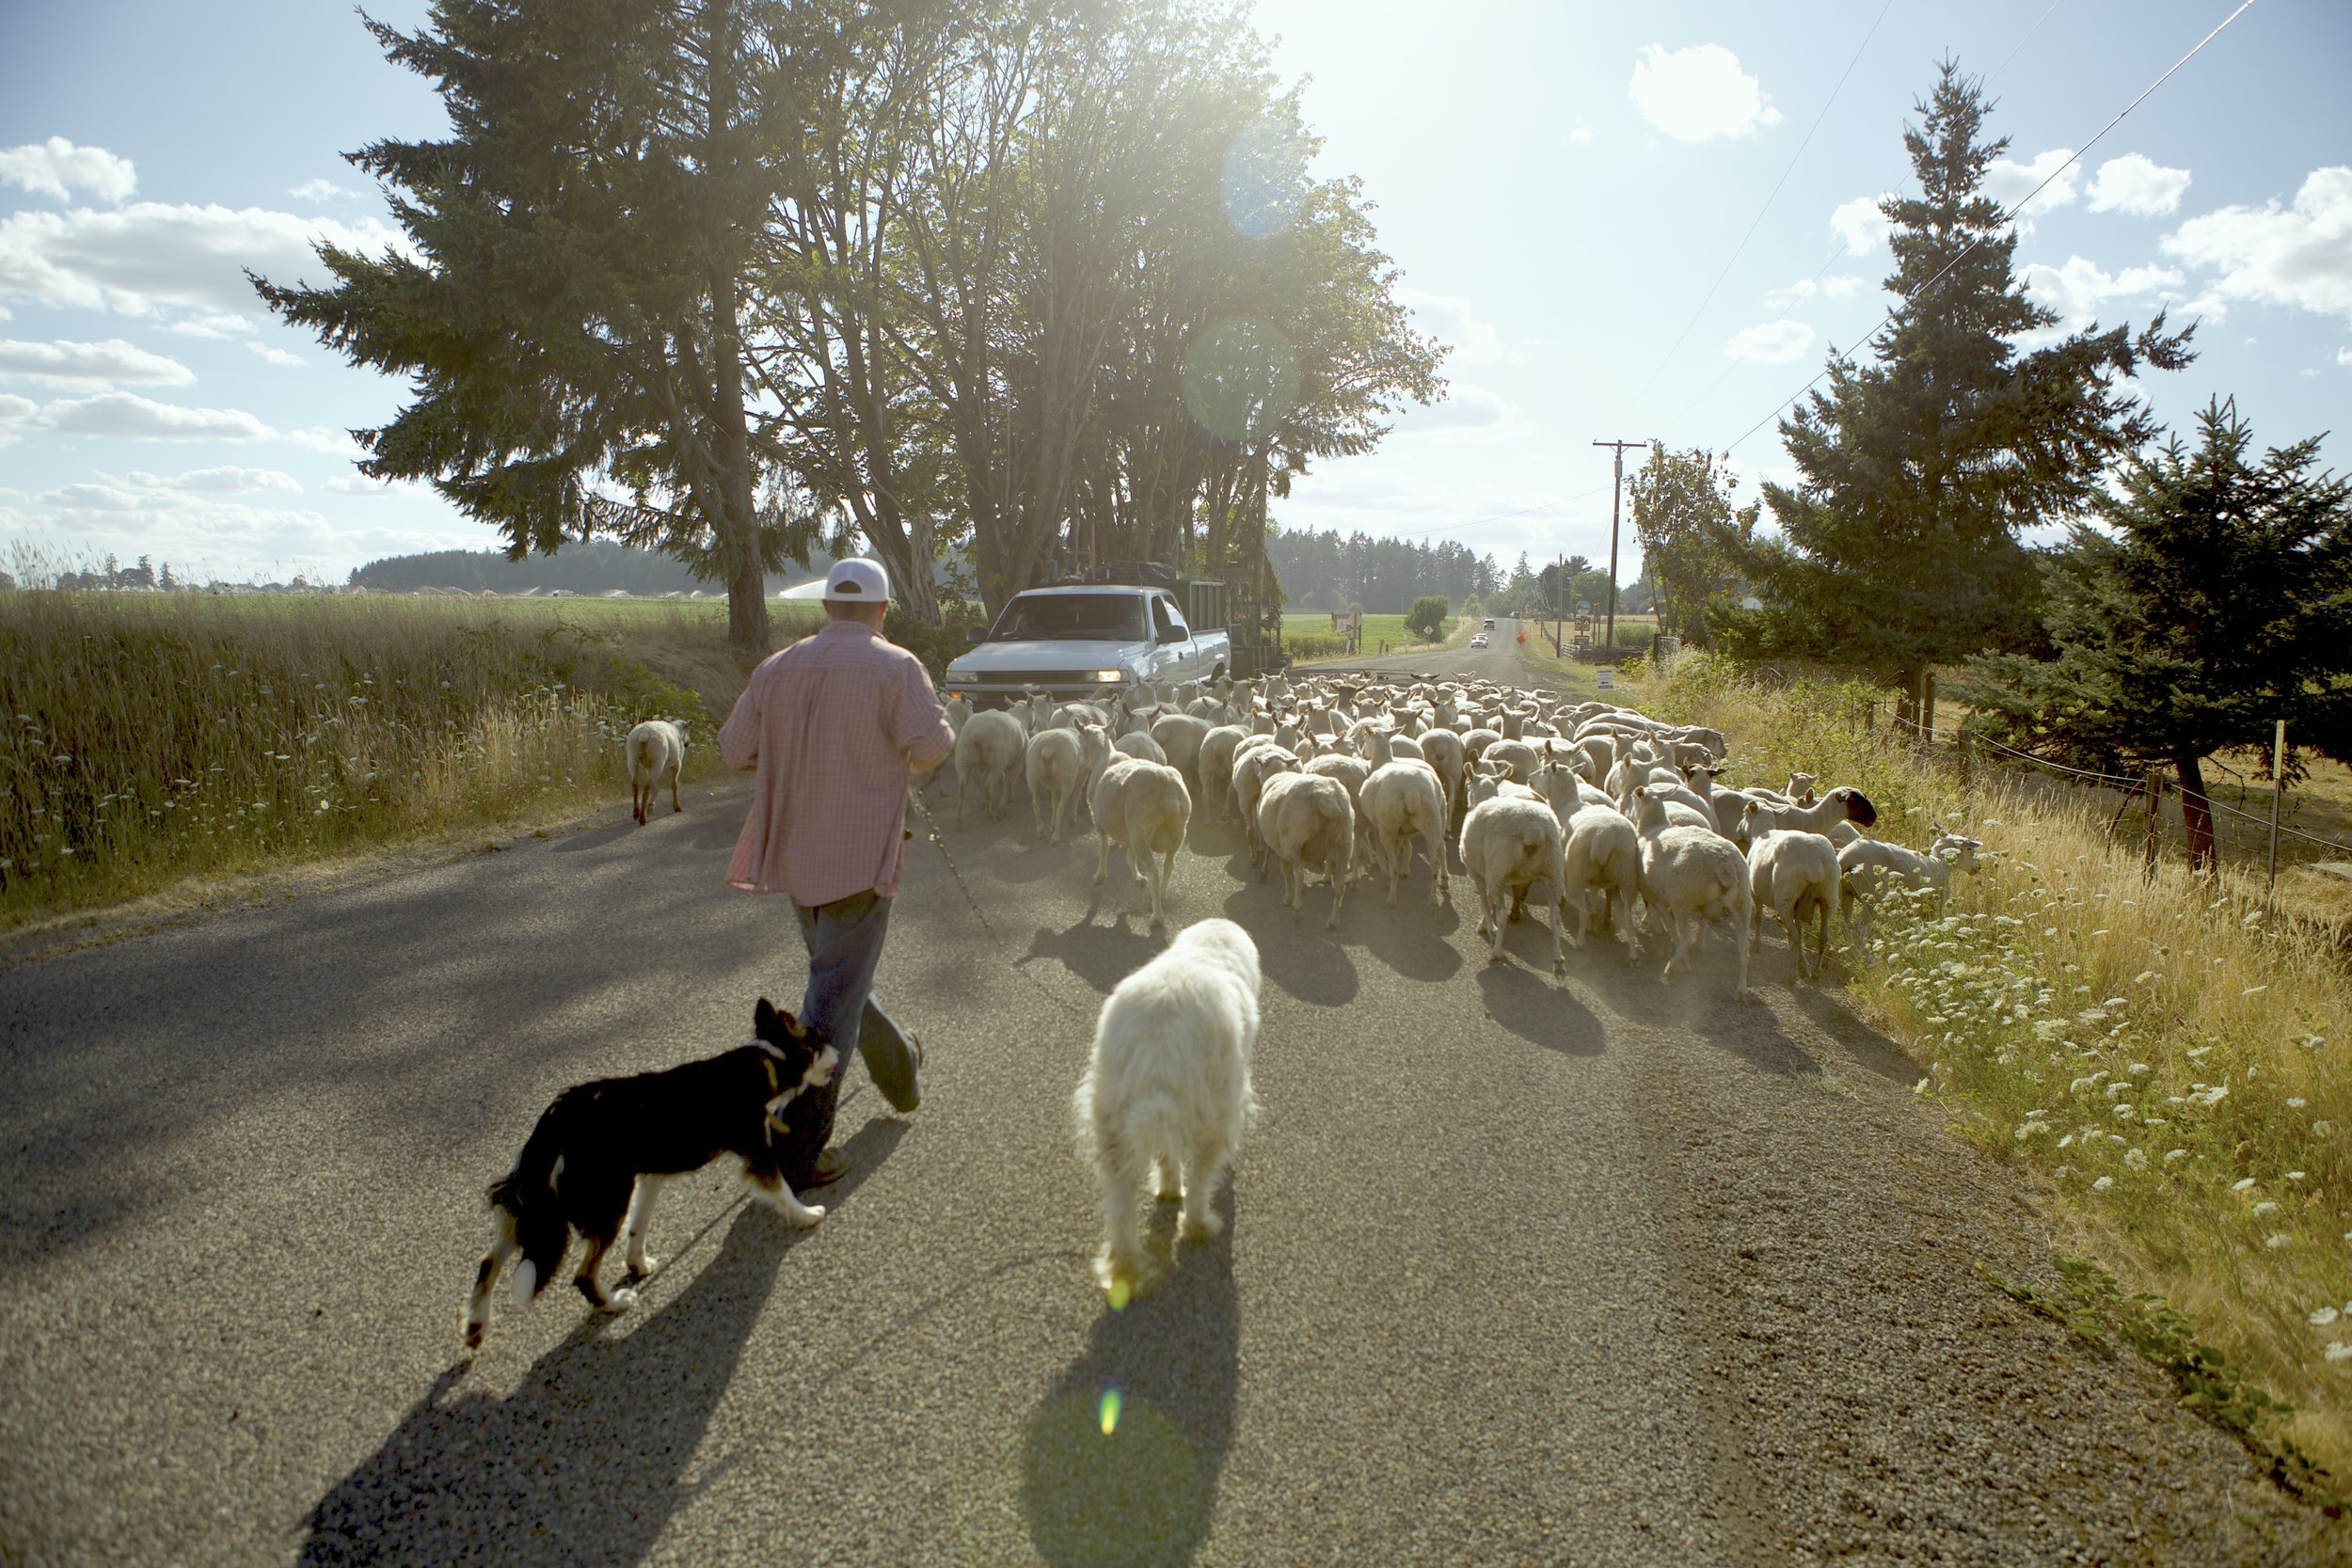 Joe Wells and his dogs driving his sheep through the roads of Willamette Valley.